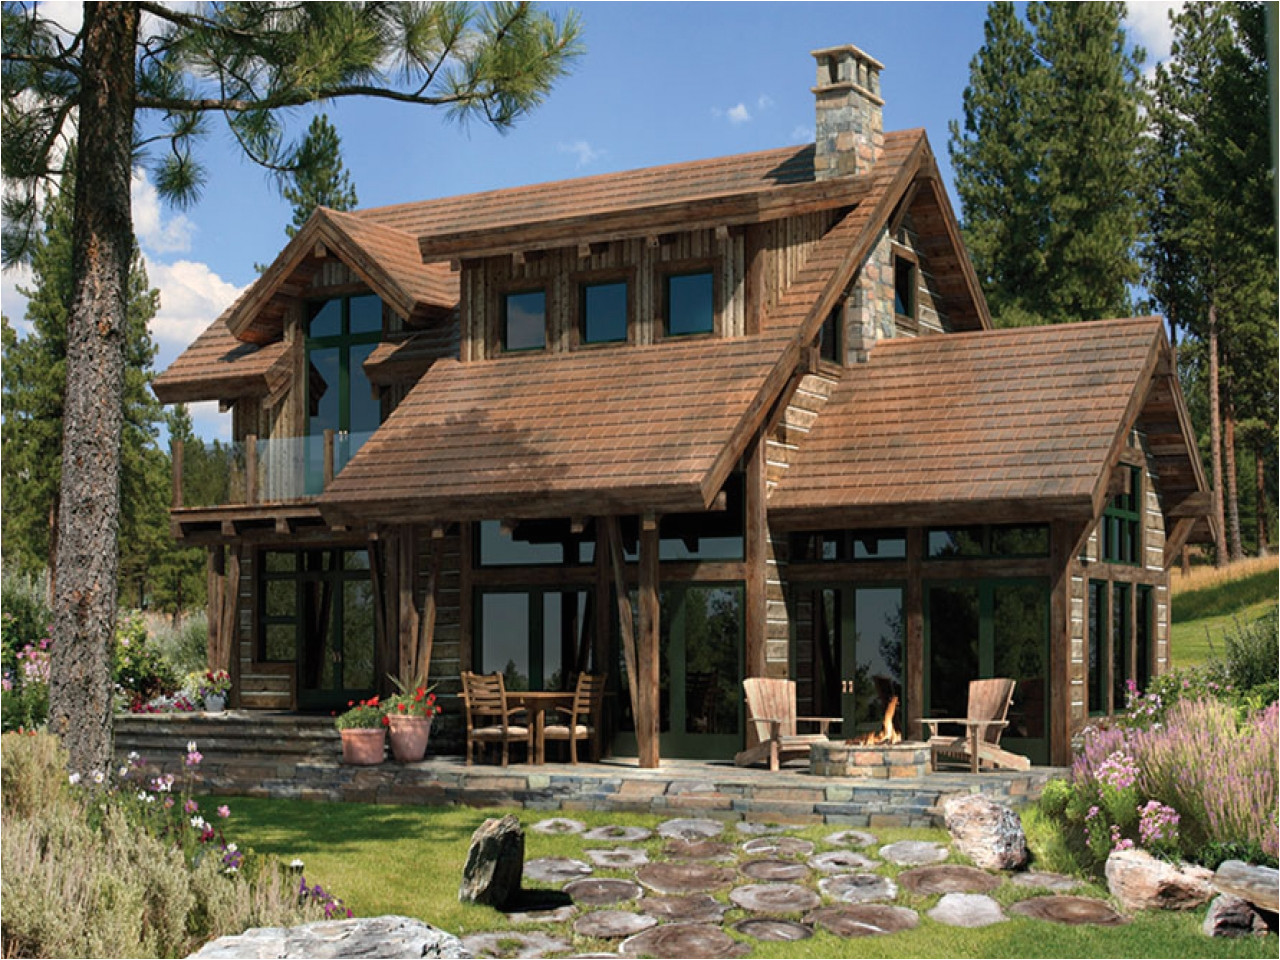 f40060bb8d6b3cd8 timber frame home house plans post and beam homes